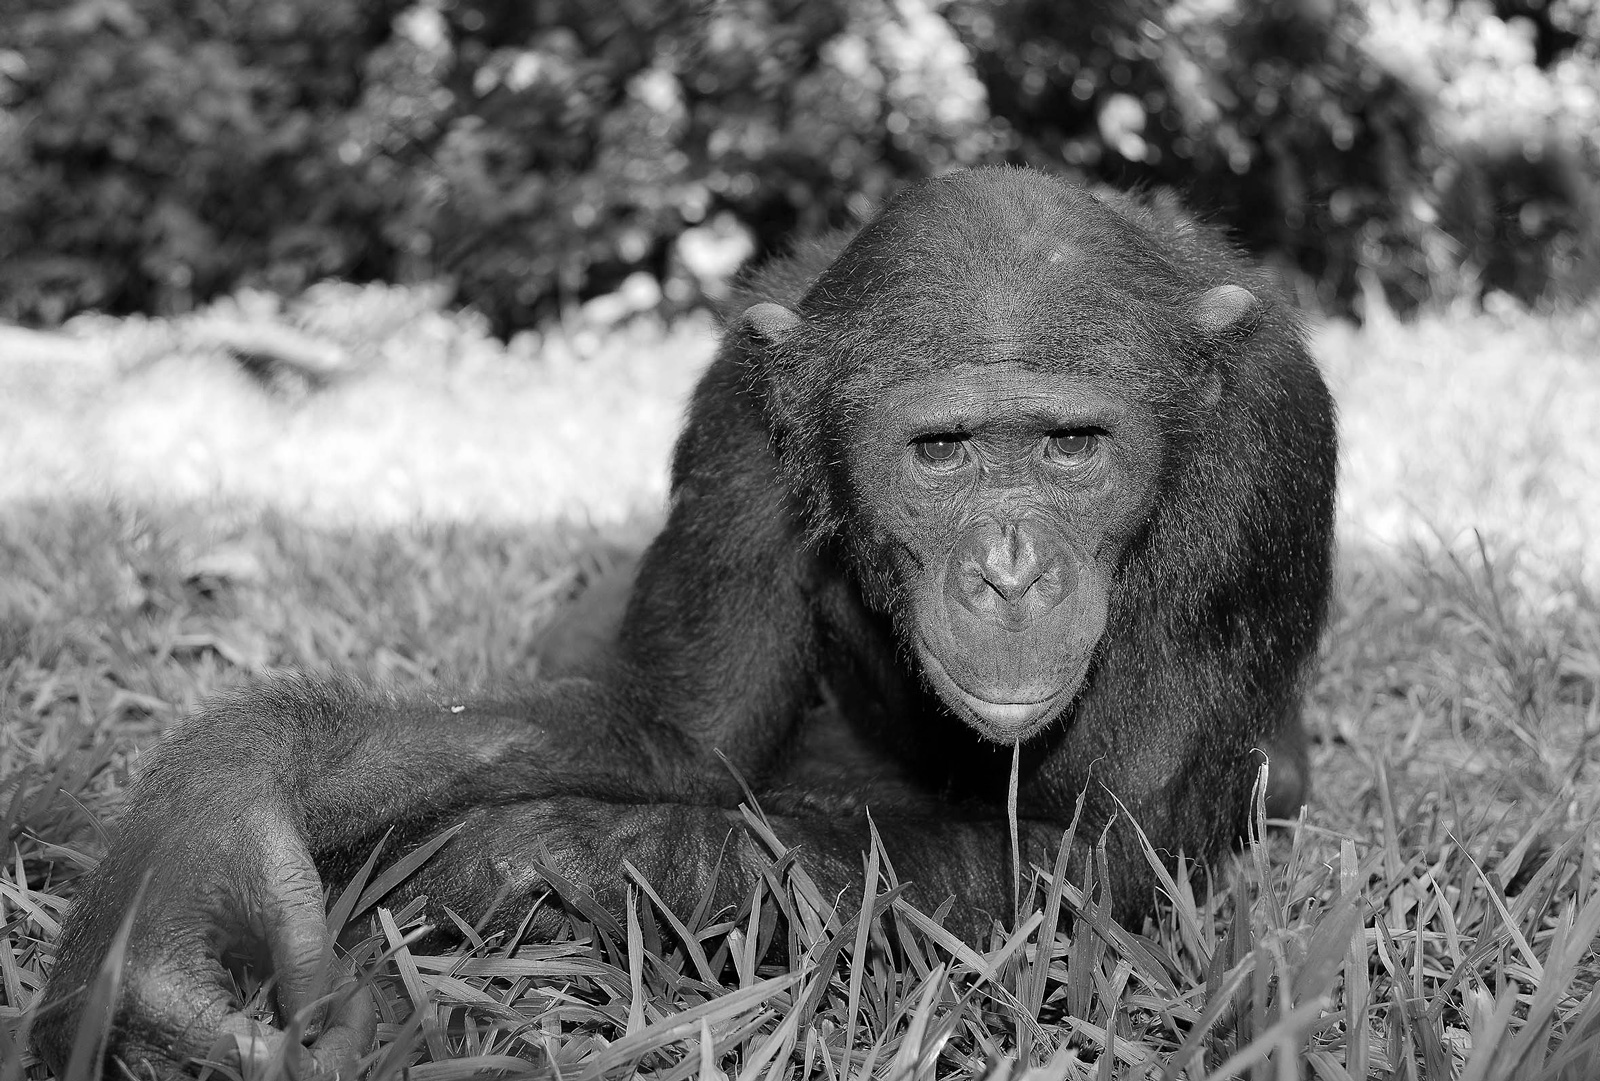 """As humans, we share 99% of our DNA with bonobos ©<a href=""""http://www.homoambiens.com/ha/homoambiens_ing.php"""" target=""""_blank"""">Homo Ambiens Photography</a>"""